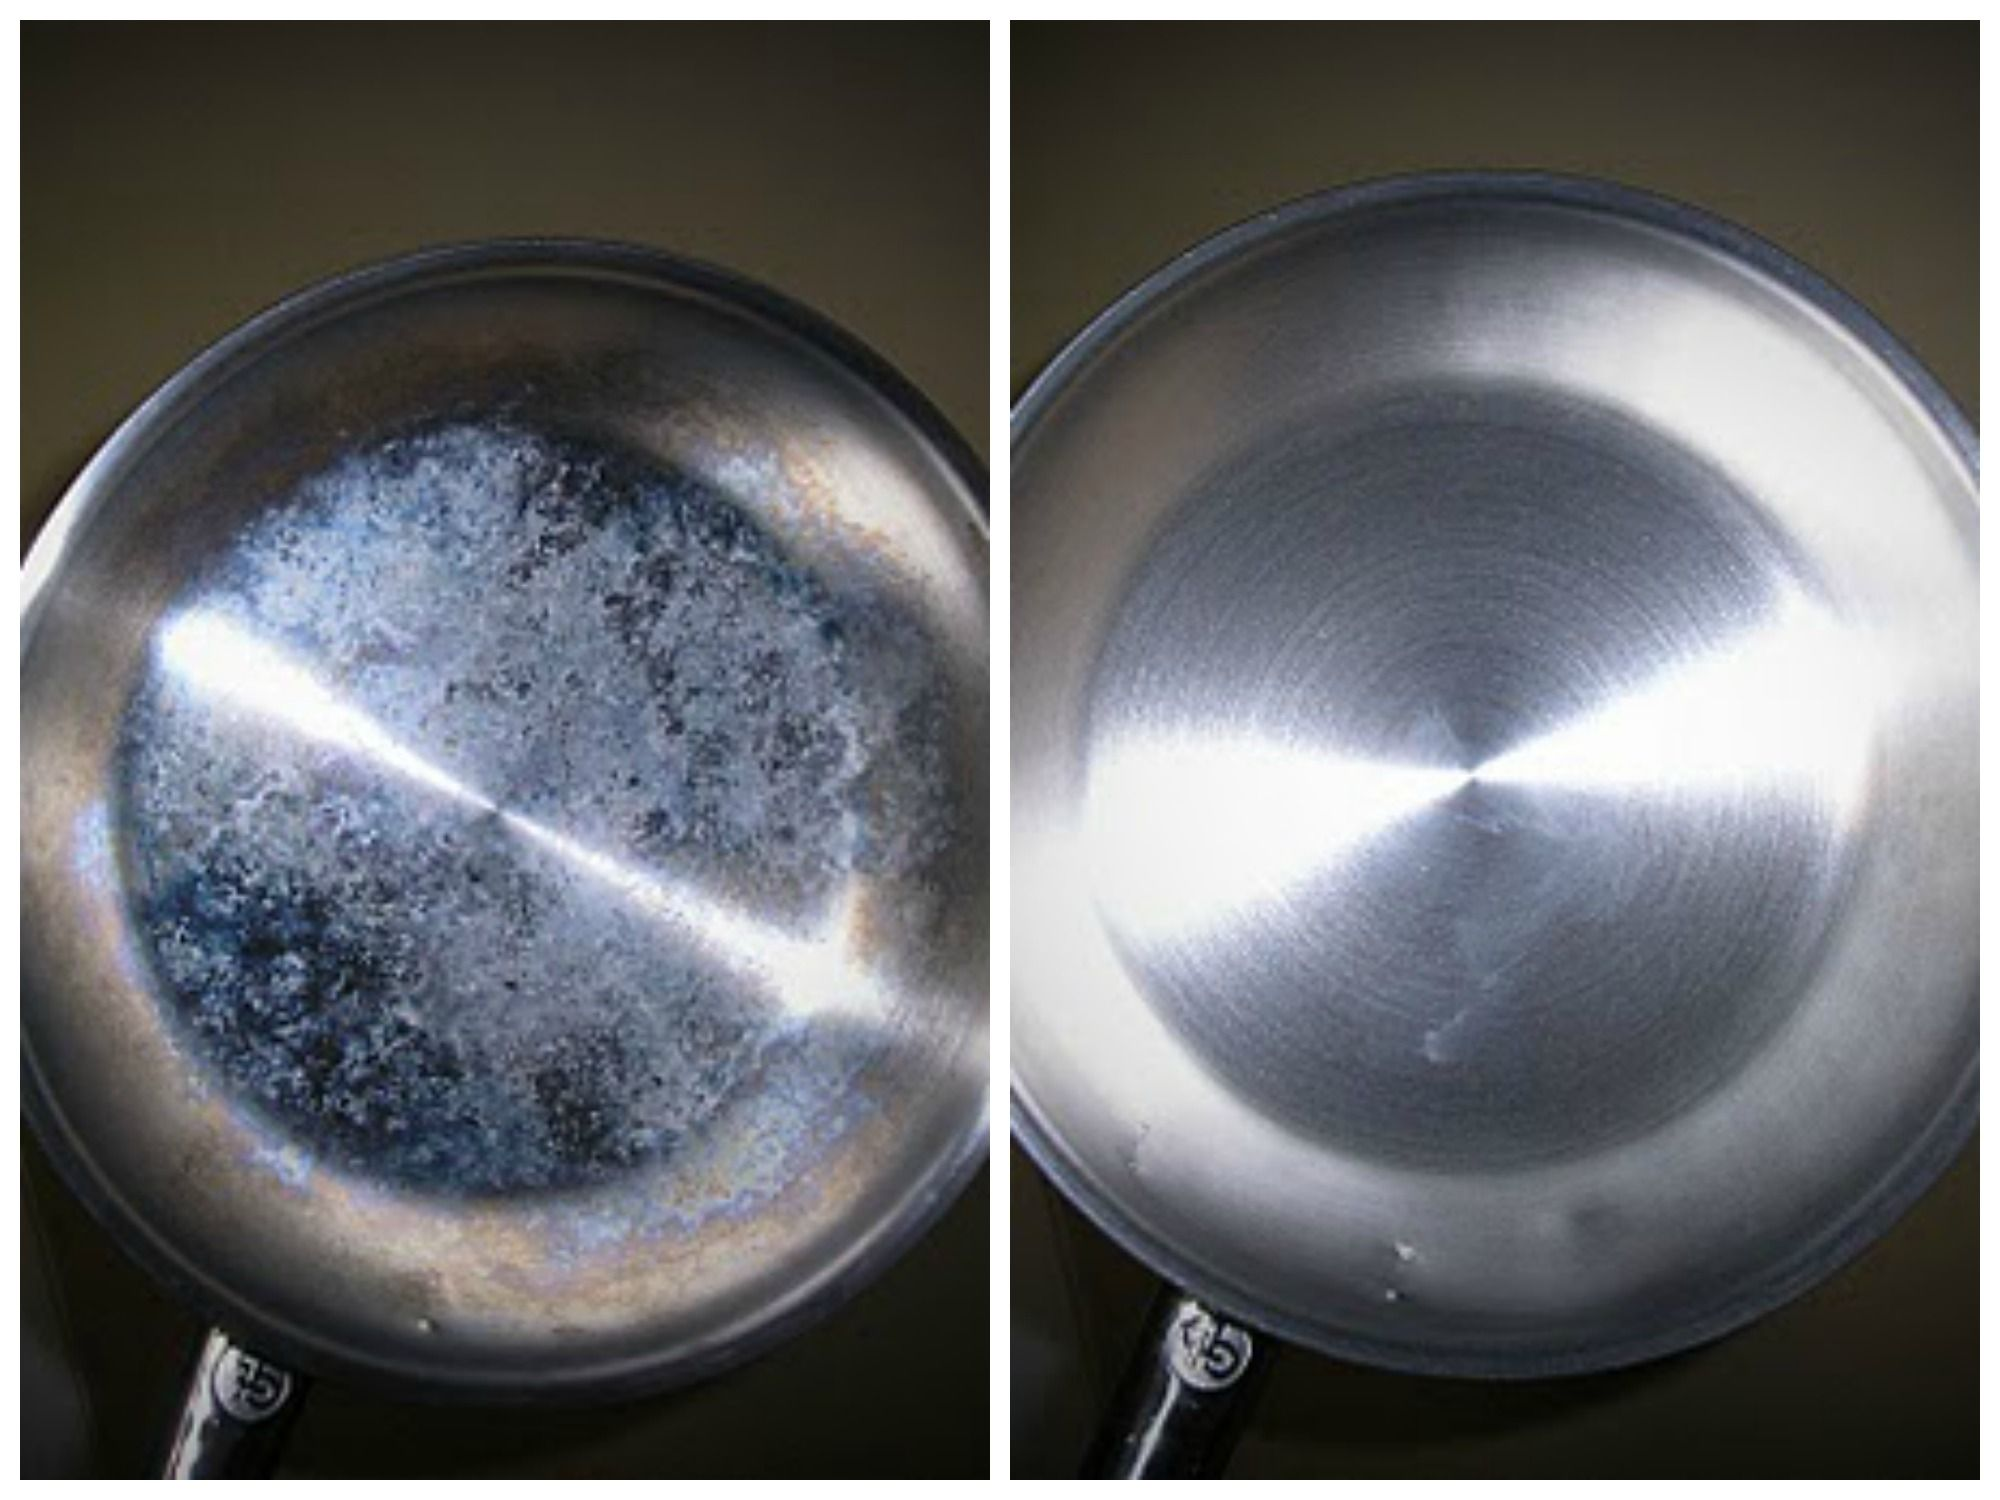 7 Super Smart Homemade Diy Cleaning Recipes Using Vinegar That You Have To Try Homemade Stainless Steel Cleaner Stainless Steel Cleaning Stainless Steel Pans